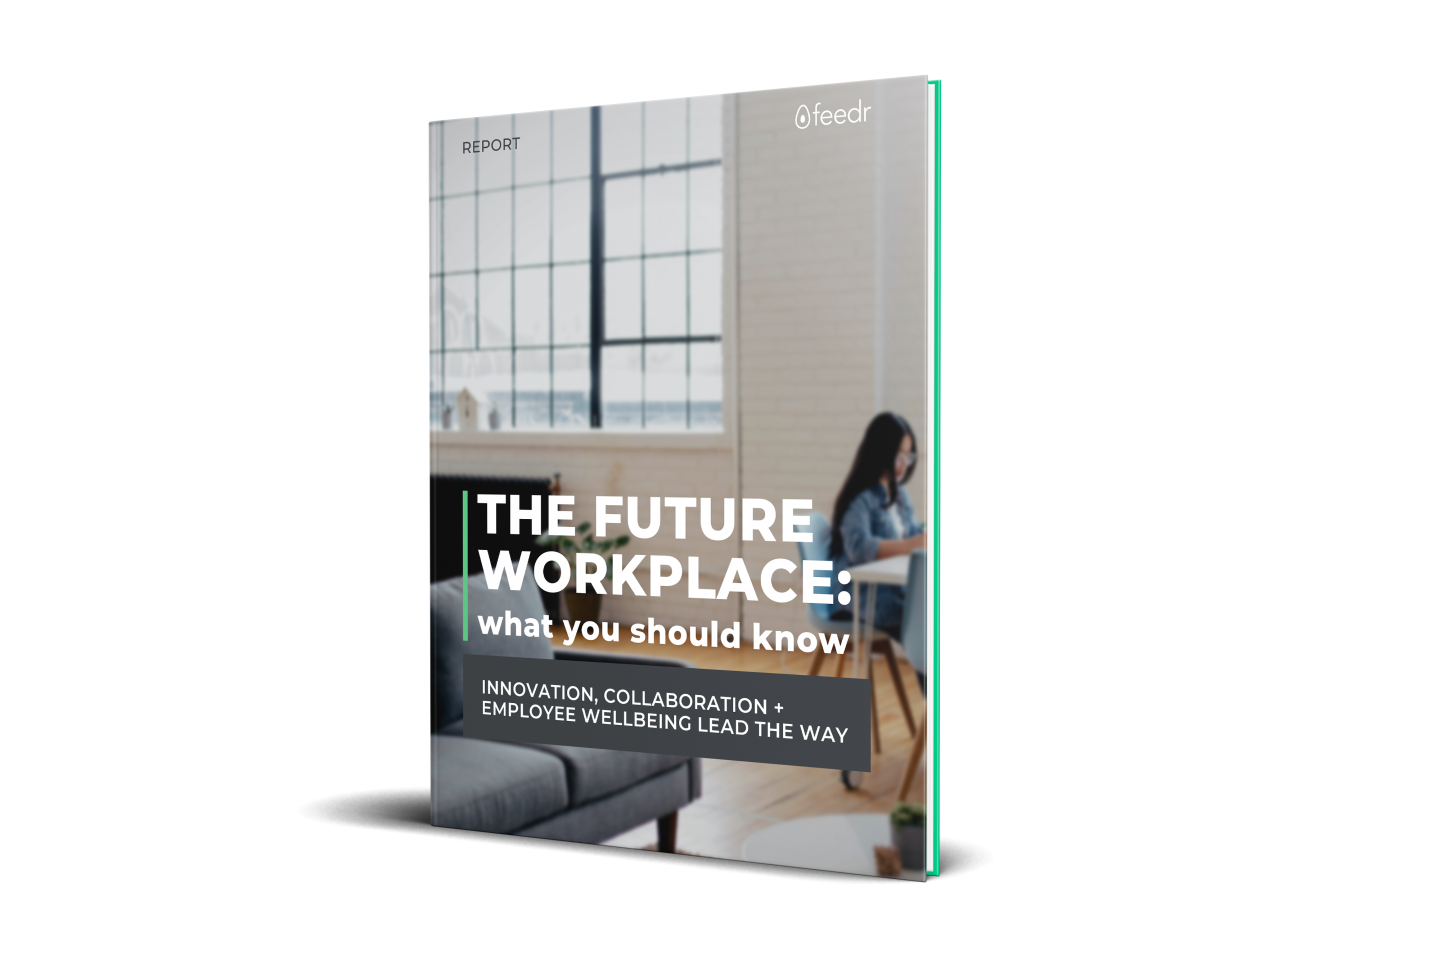 The future workplace whitepaper